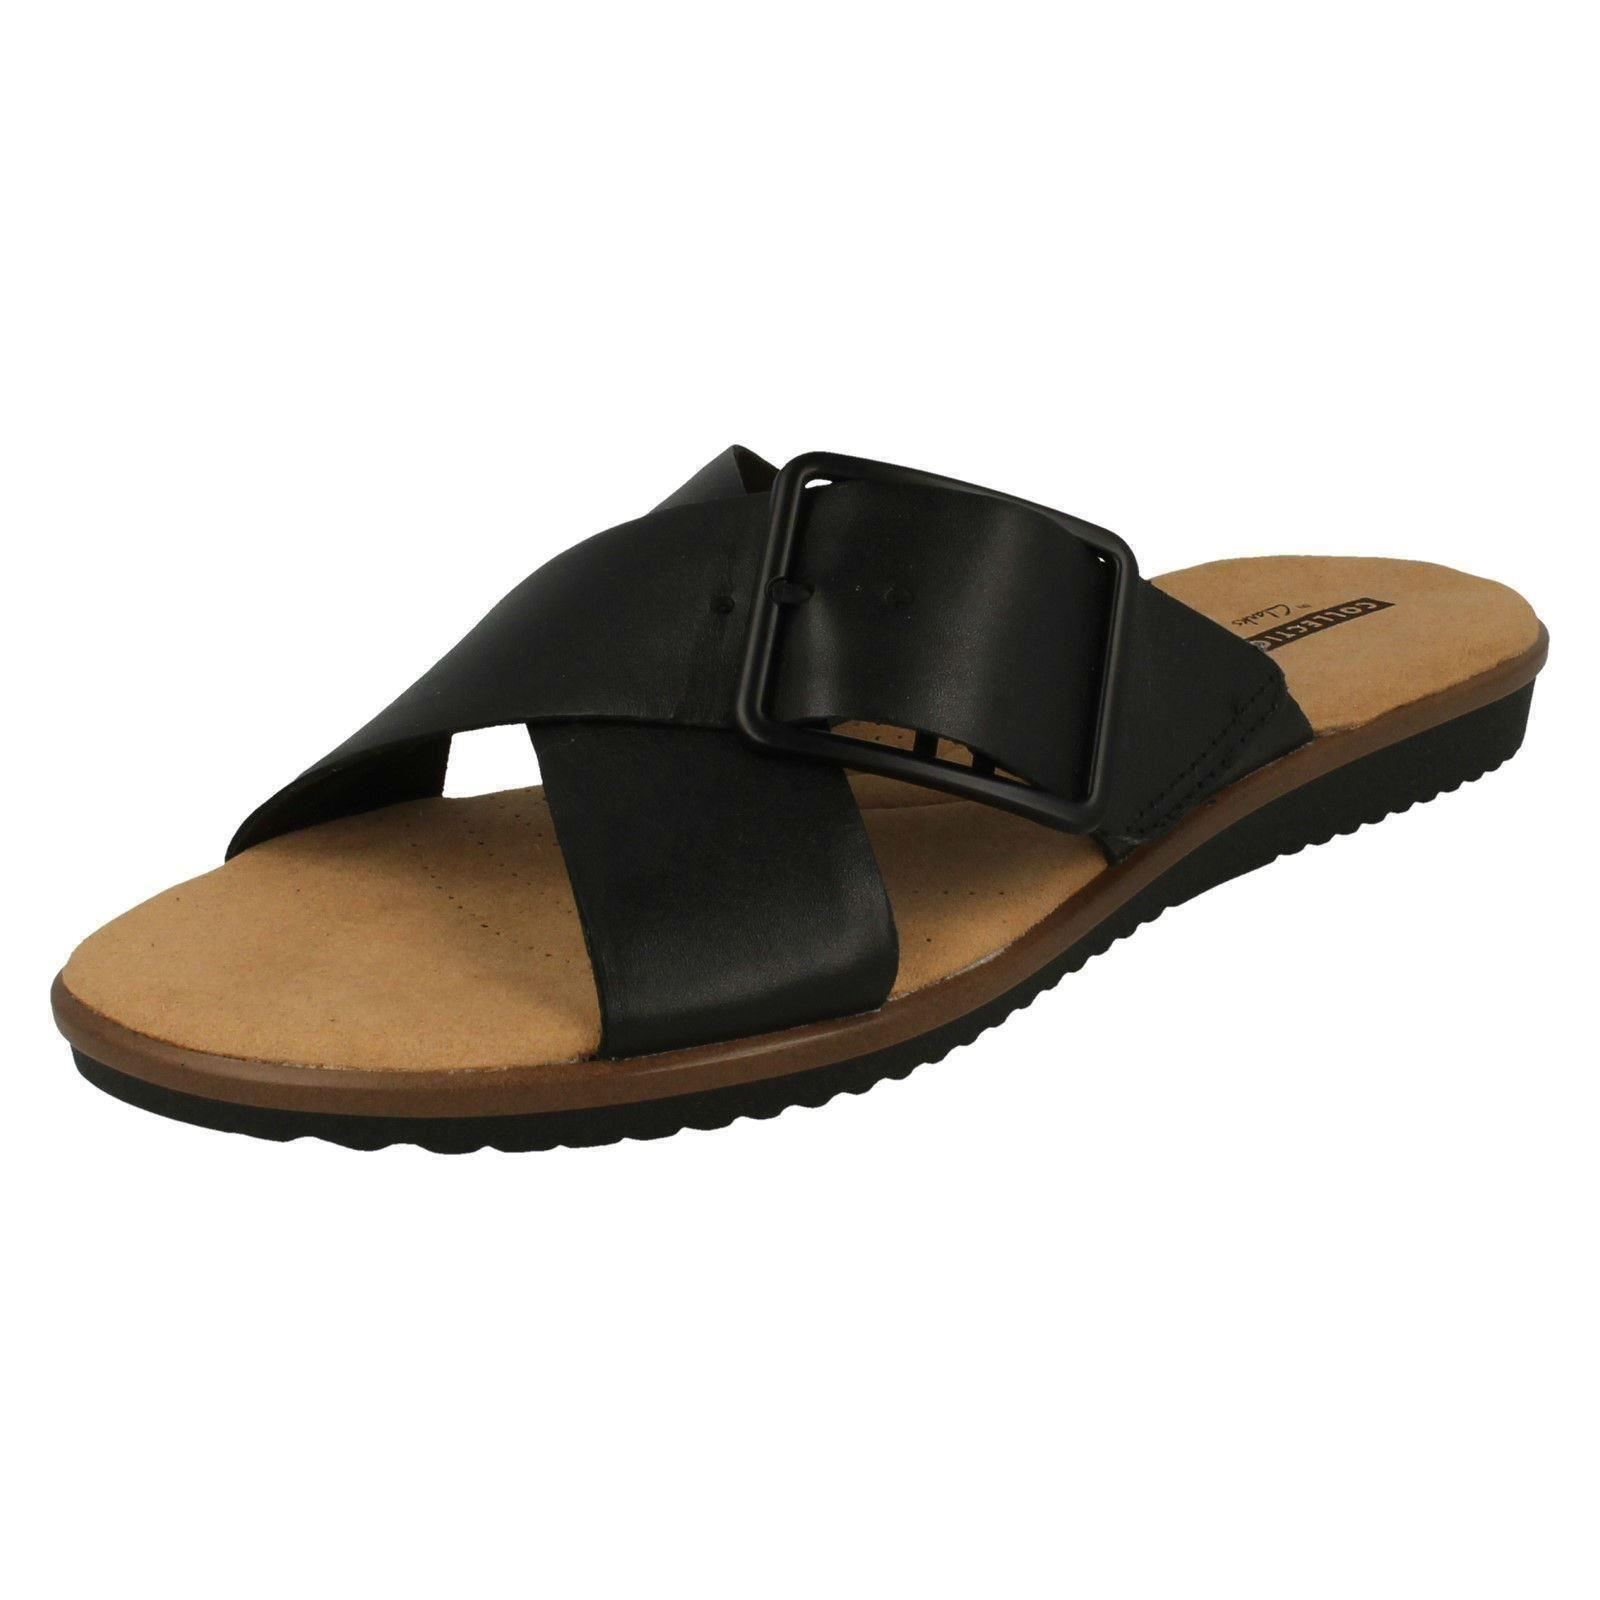 dccf3244cad2 Clarks Kele Heather - Black Leather Womens Sandals 4 UK. About this  product. Picture 1 of 8  Picture 2 of 8 ...